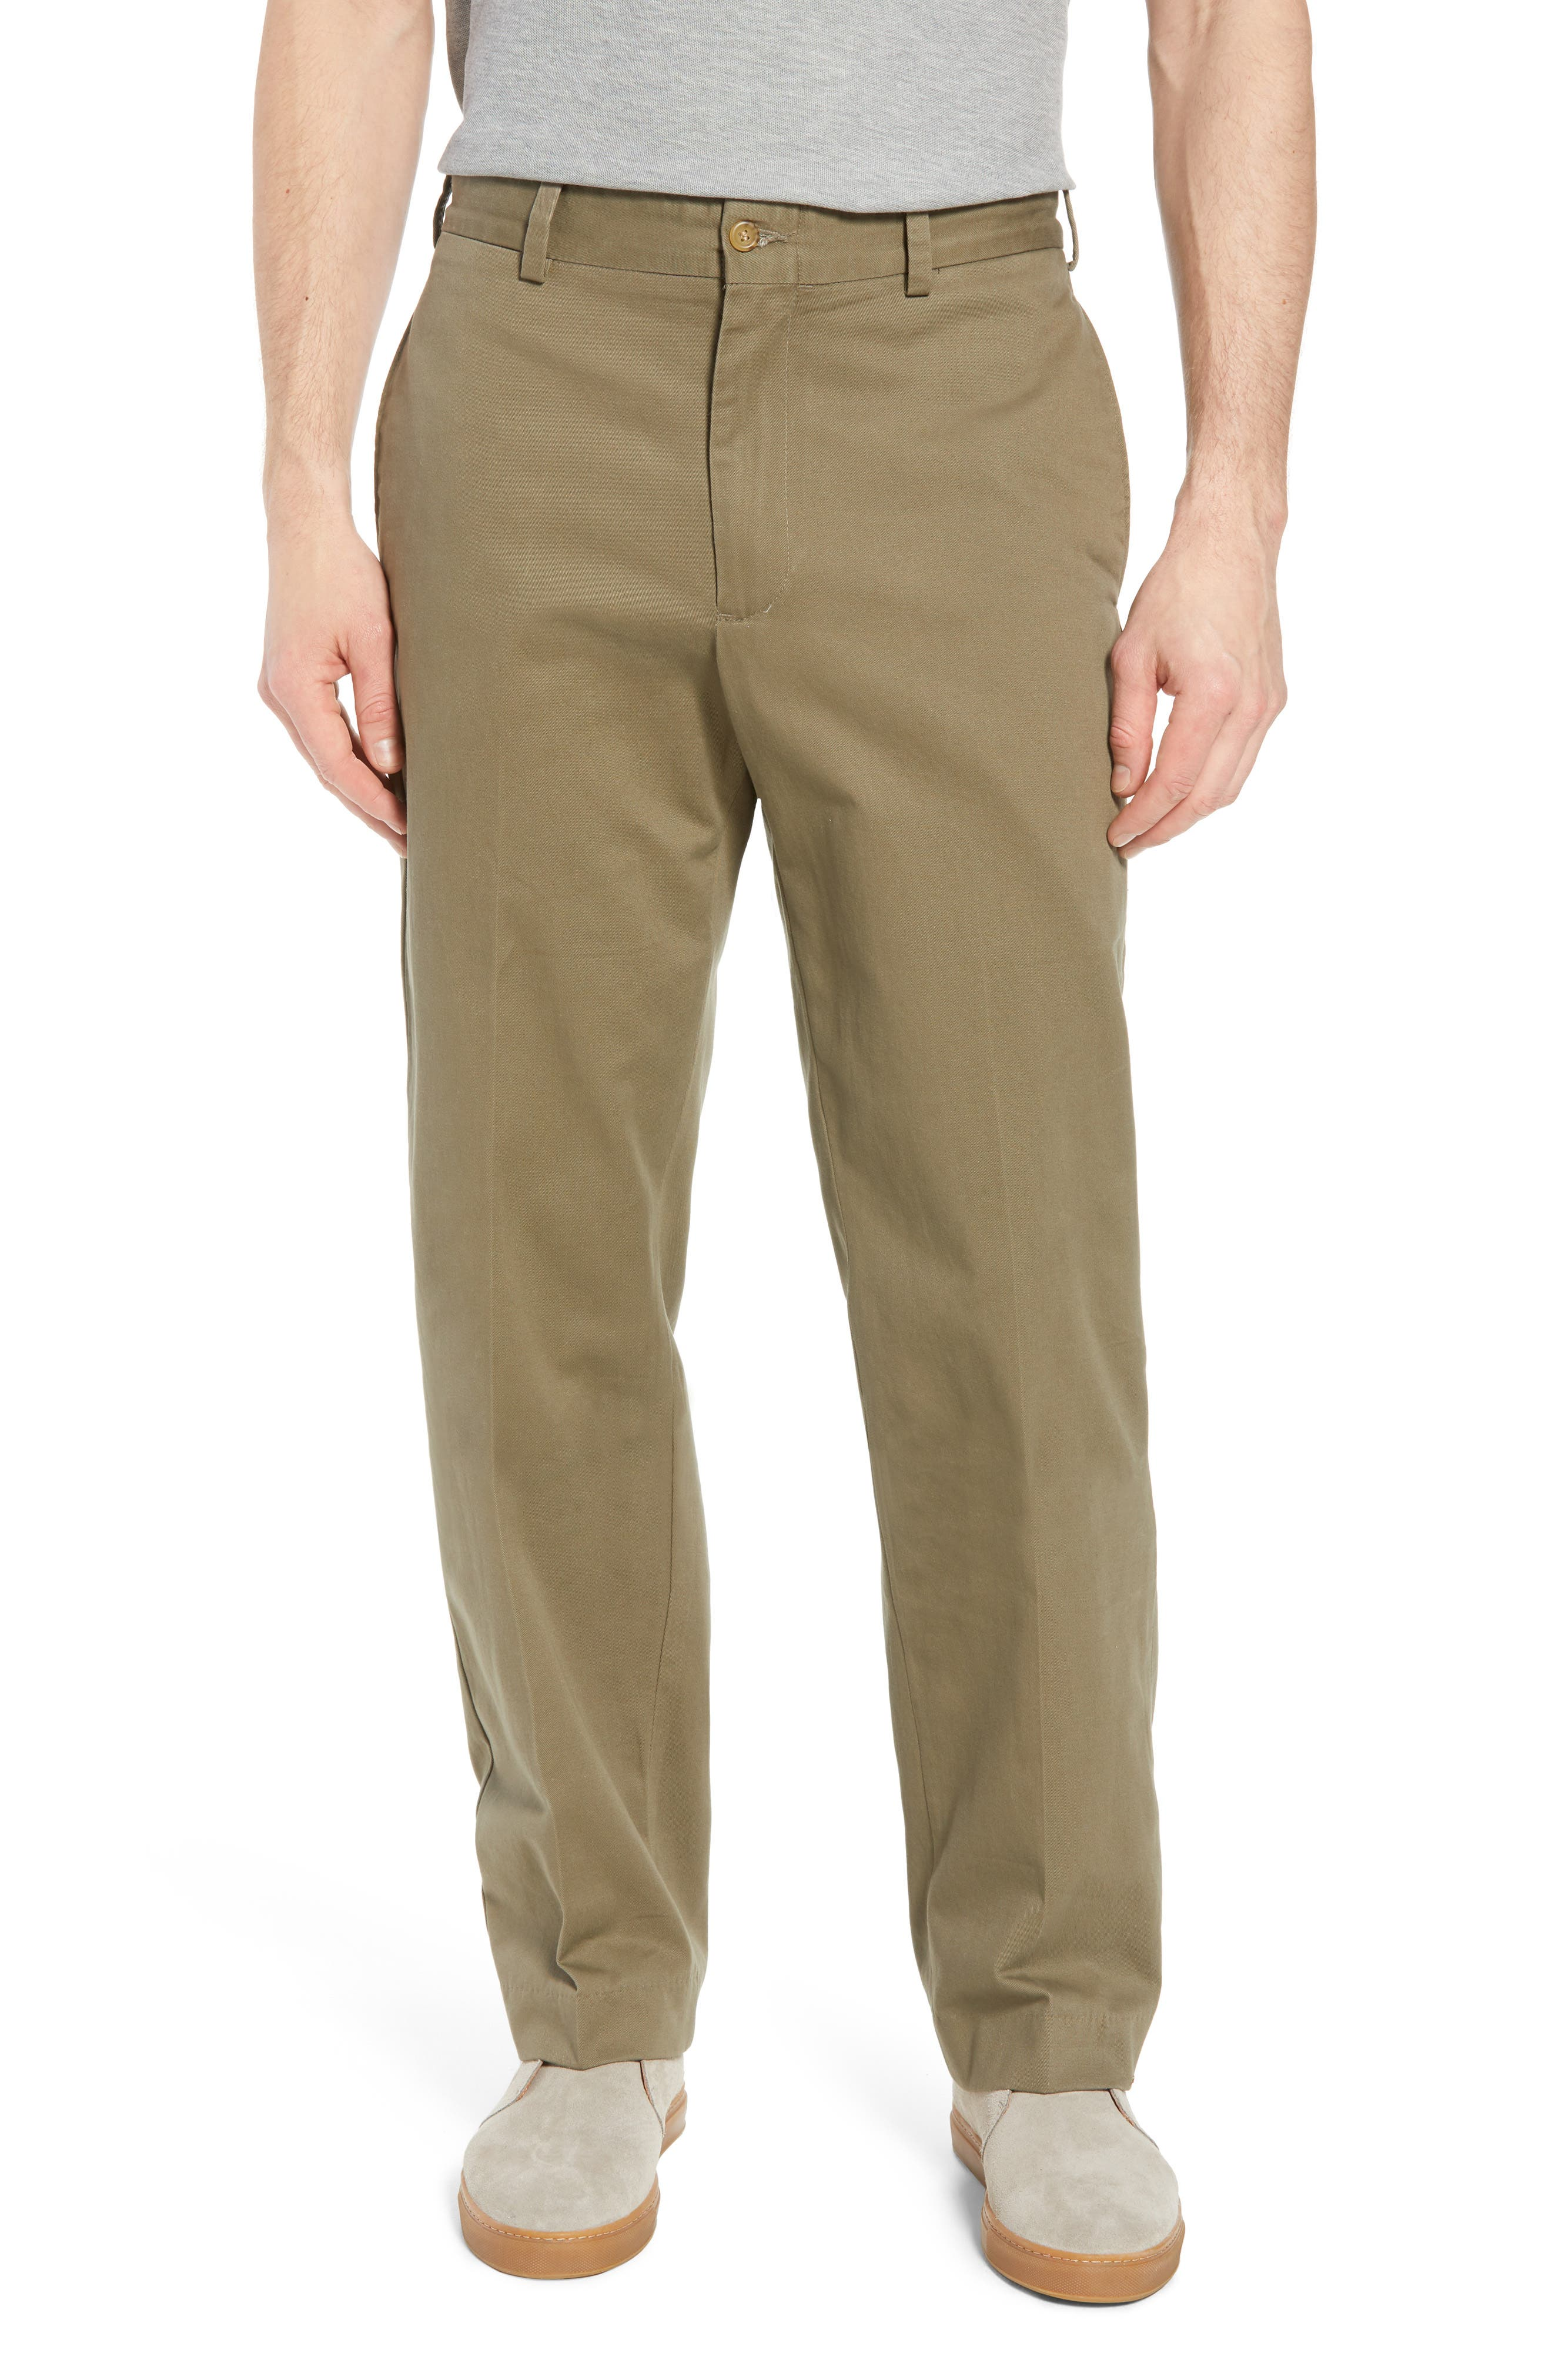 M2 Classic Fit Flat Front Vintage Twill Pants,                             Main thumbnail 1, color,                             Olive